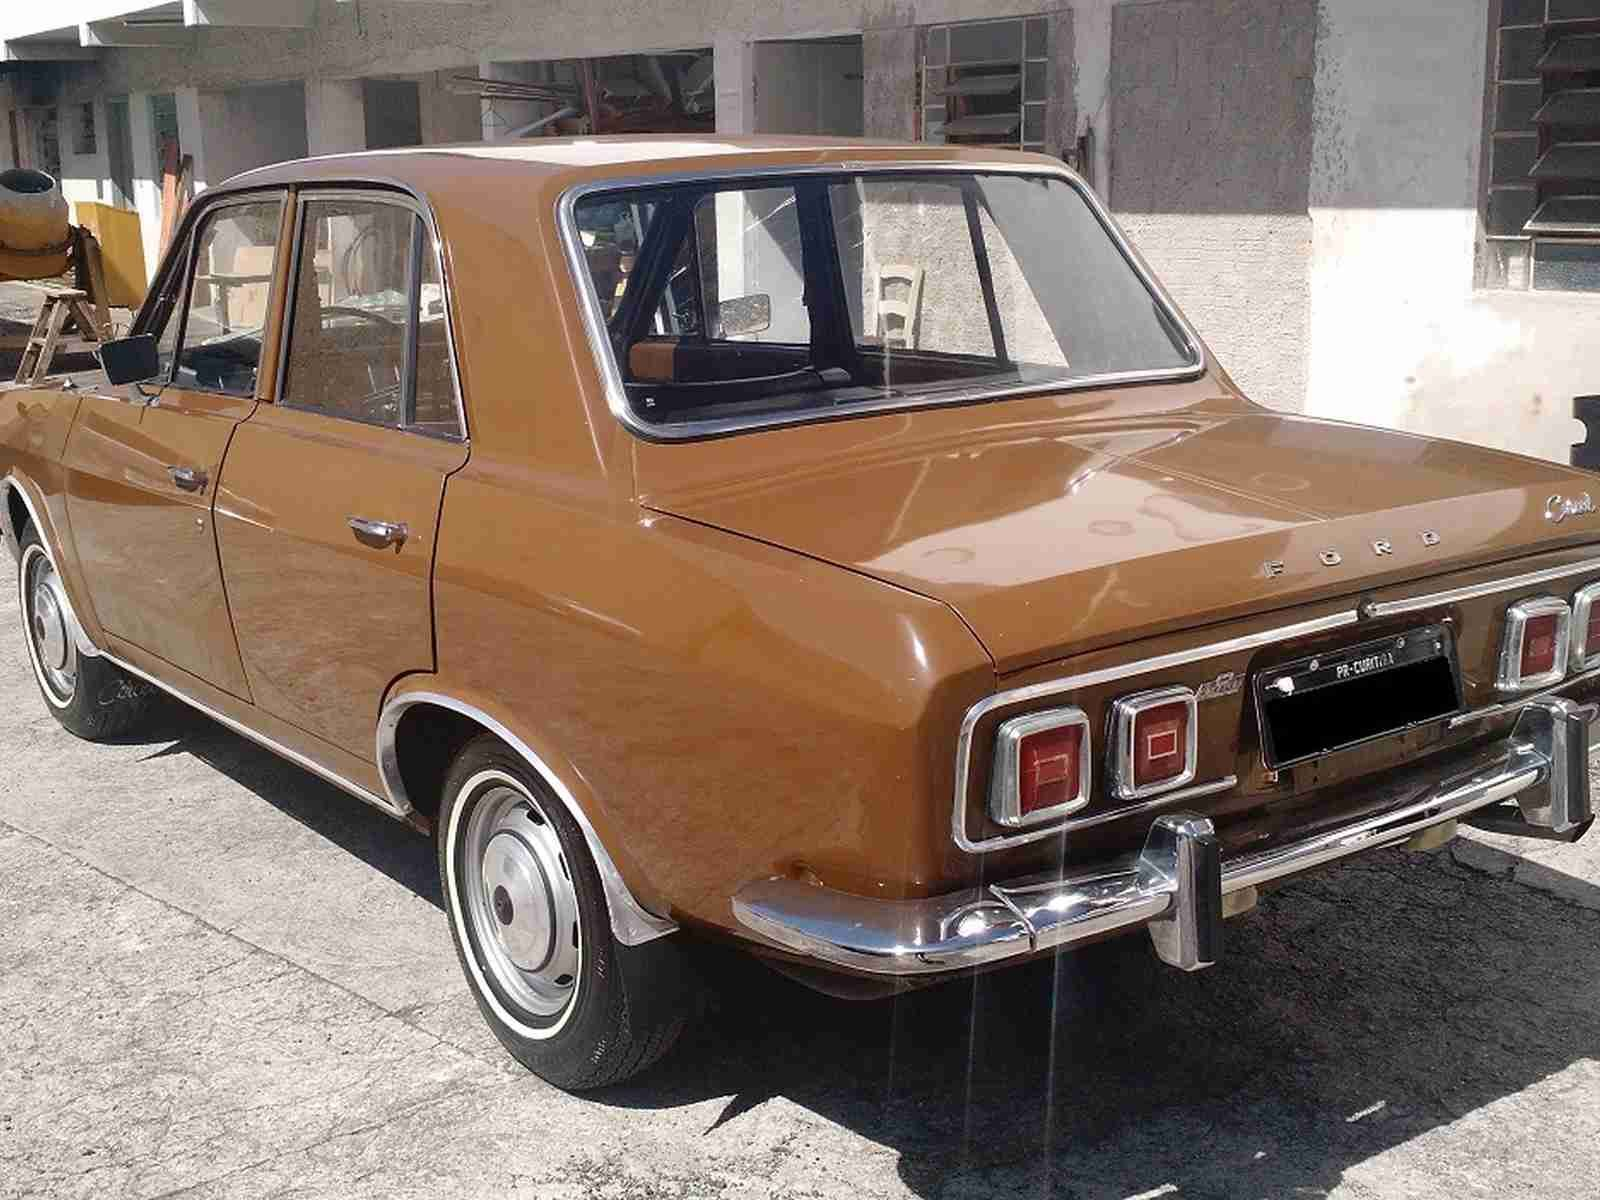 Best Corcel Ideas On Pinterest Ford Corcel Carros Antigos